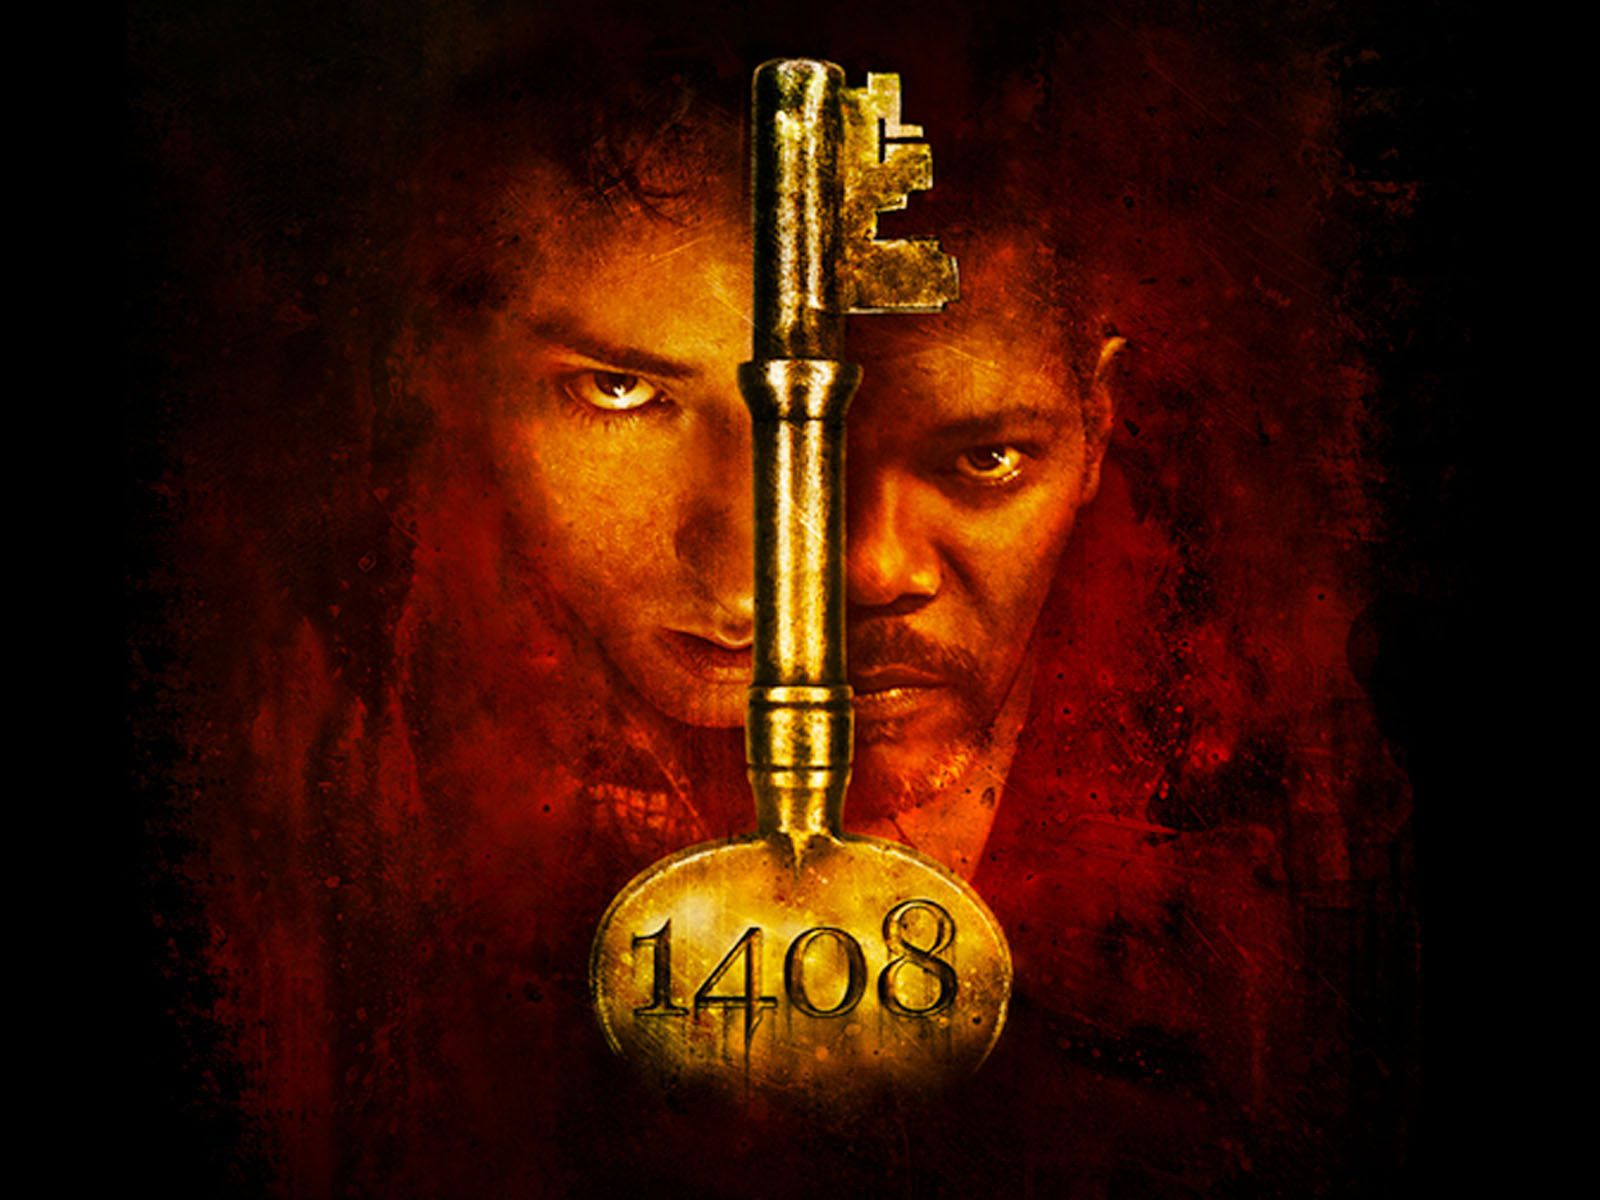 Chambre 1408 tats unis 2007 we love horror for Chambre 1408